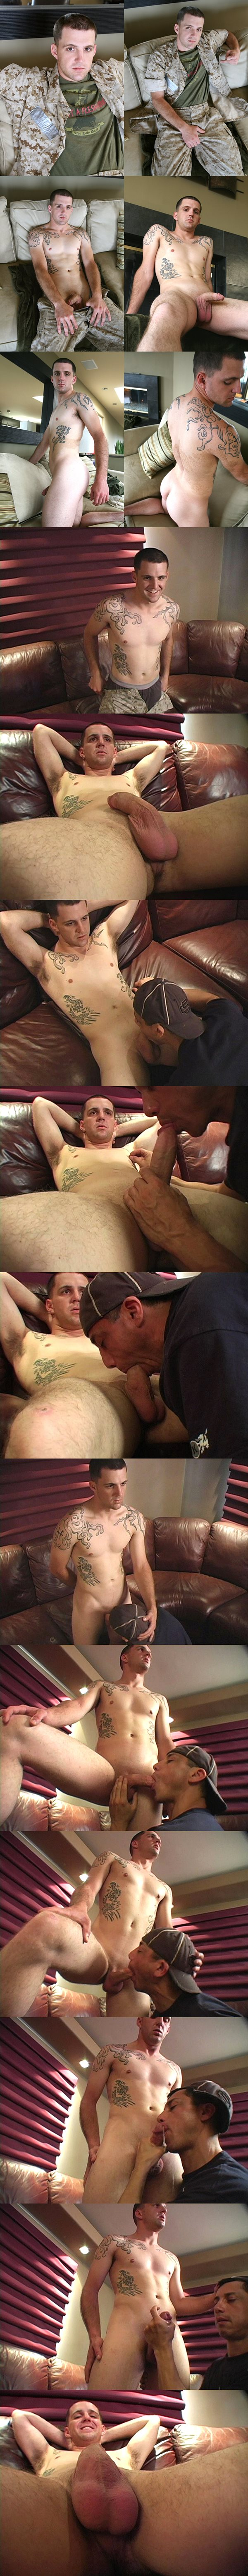 Handsome tattooed straight Marine Cal sucked and jerked off at Militaryclassified 02